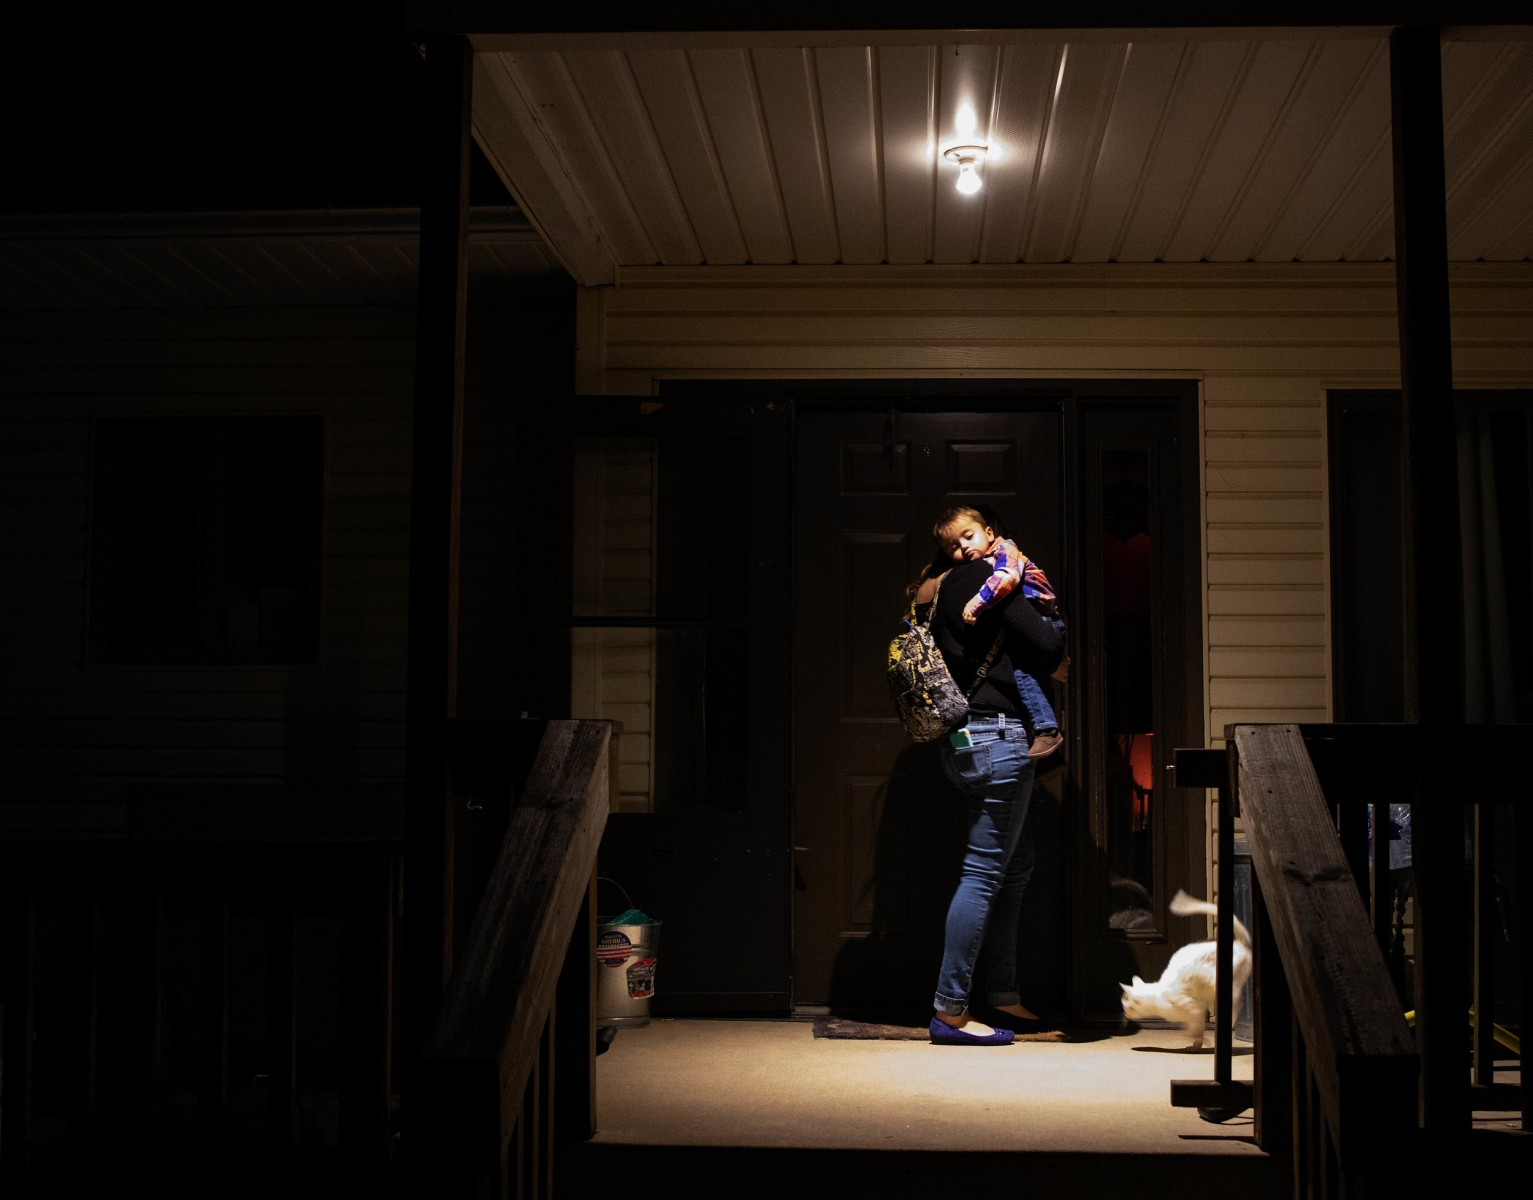 Amanda carries Kam into their house in Selma, Ind. Thursday, March 21, 2019, after speaking on a panel about Rare Diseases hosted by Ball State University.